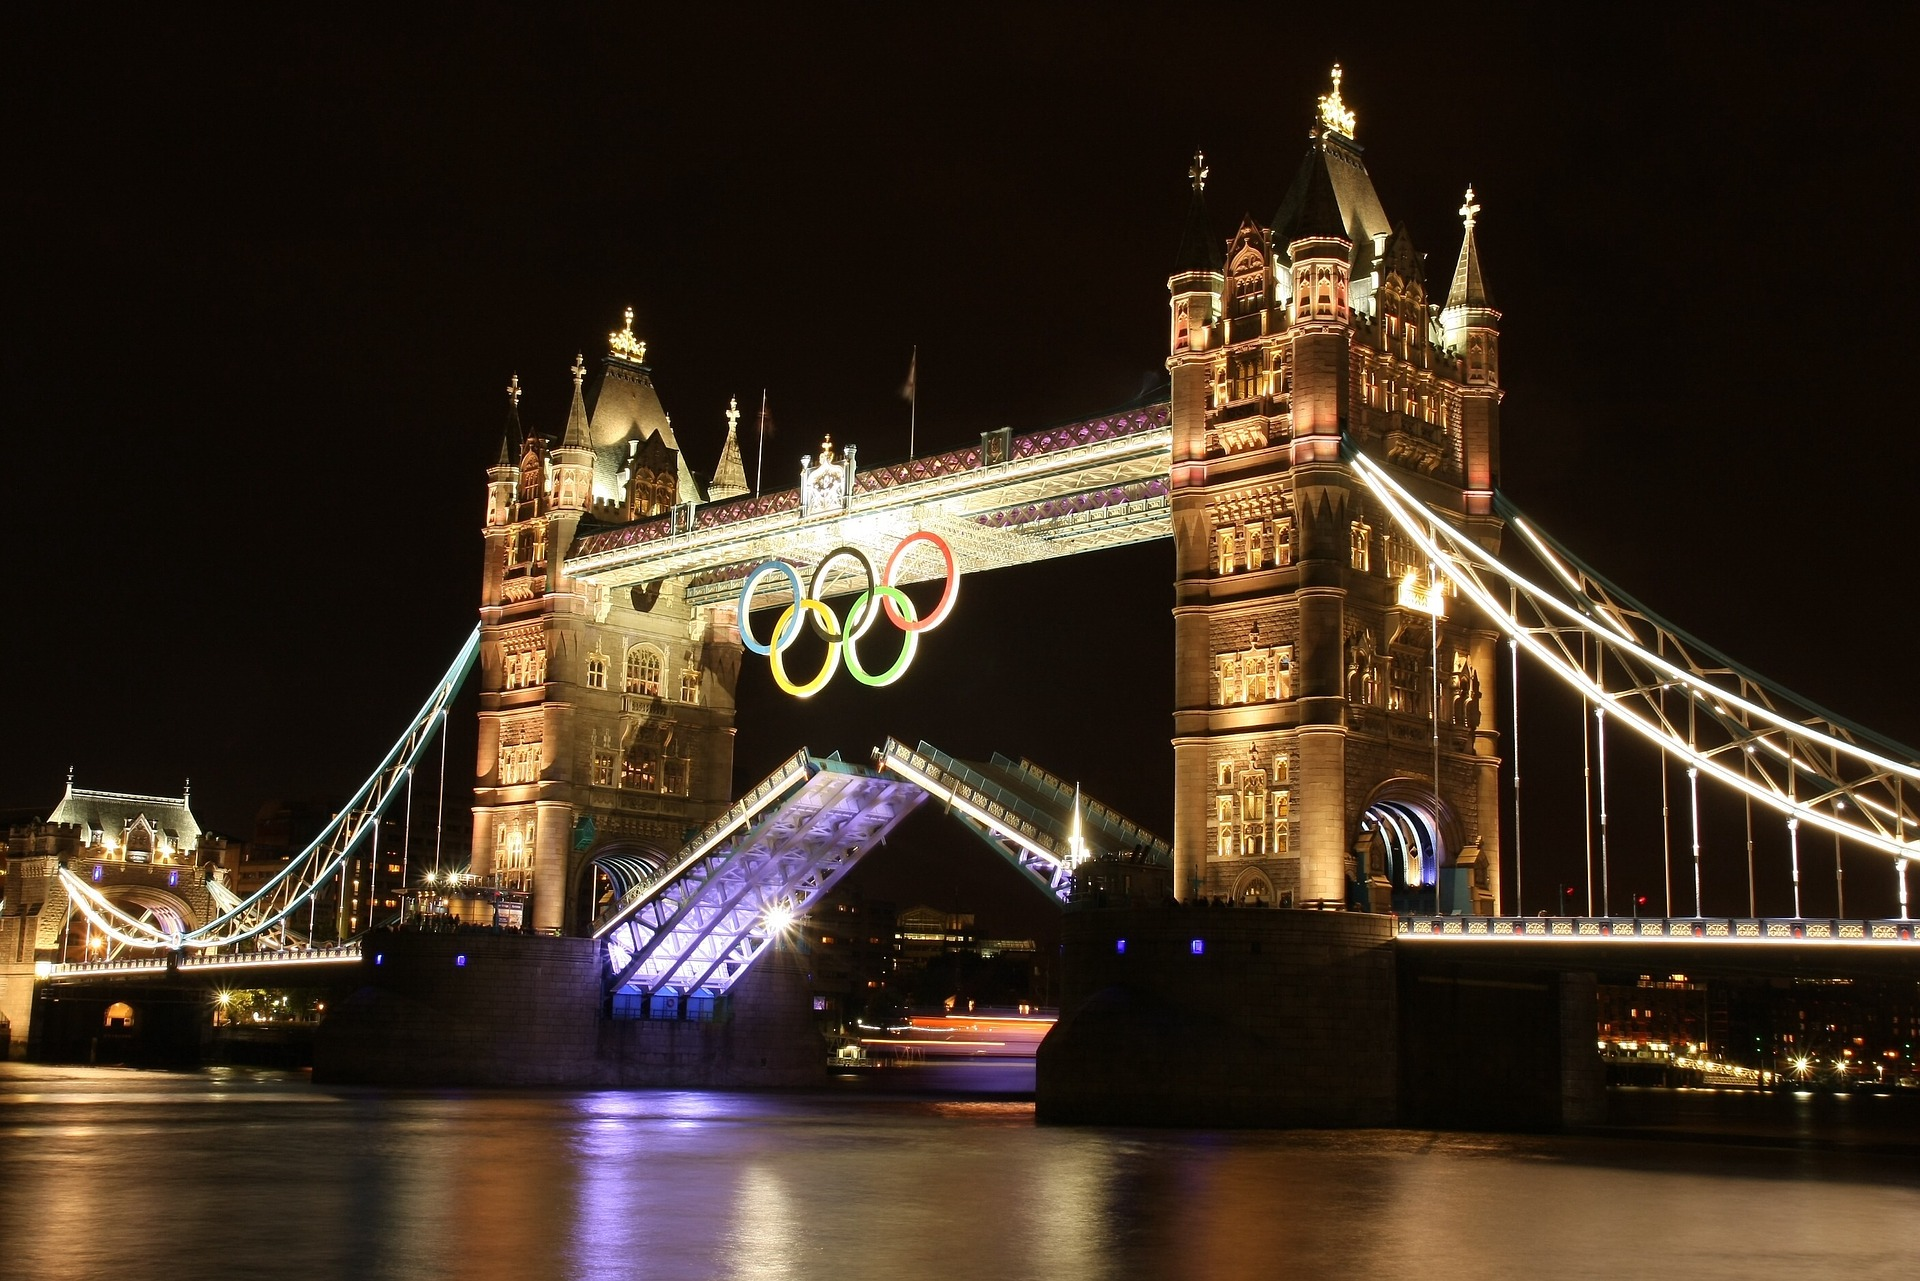 London hosted the Summer Olympics in 2012, but for some reason I didn't attend.